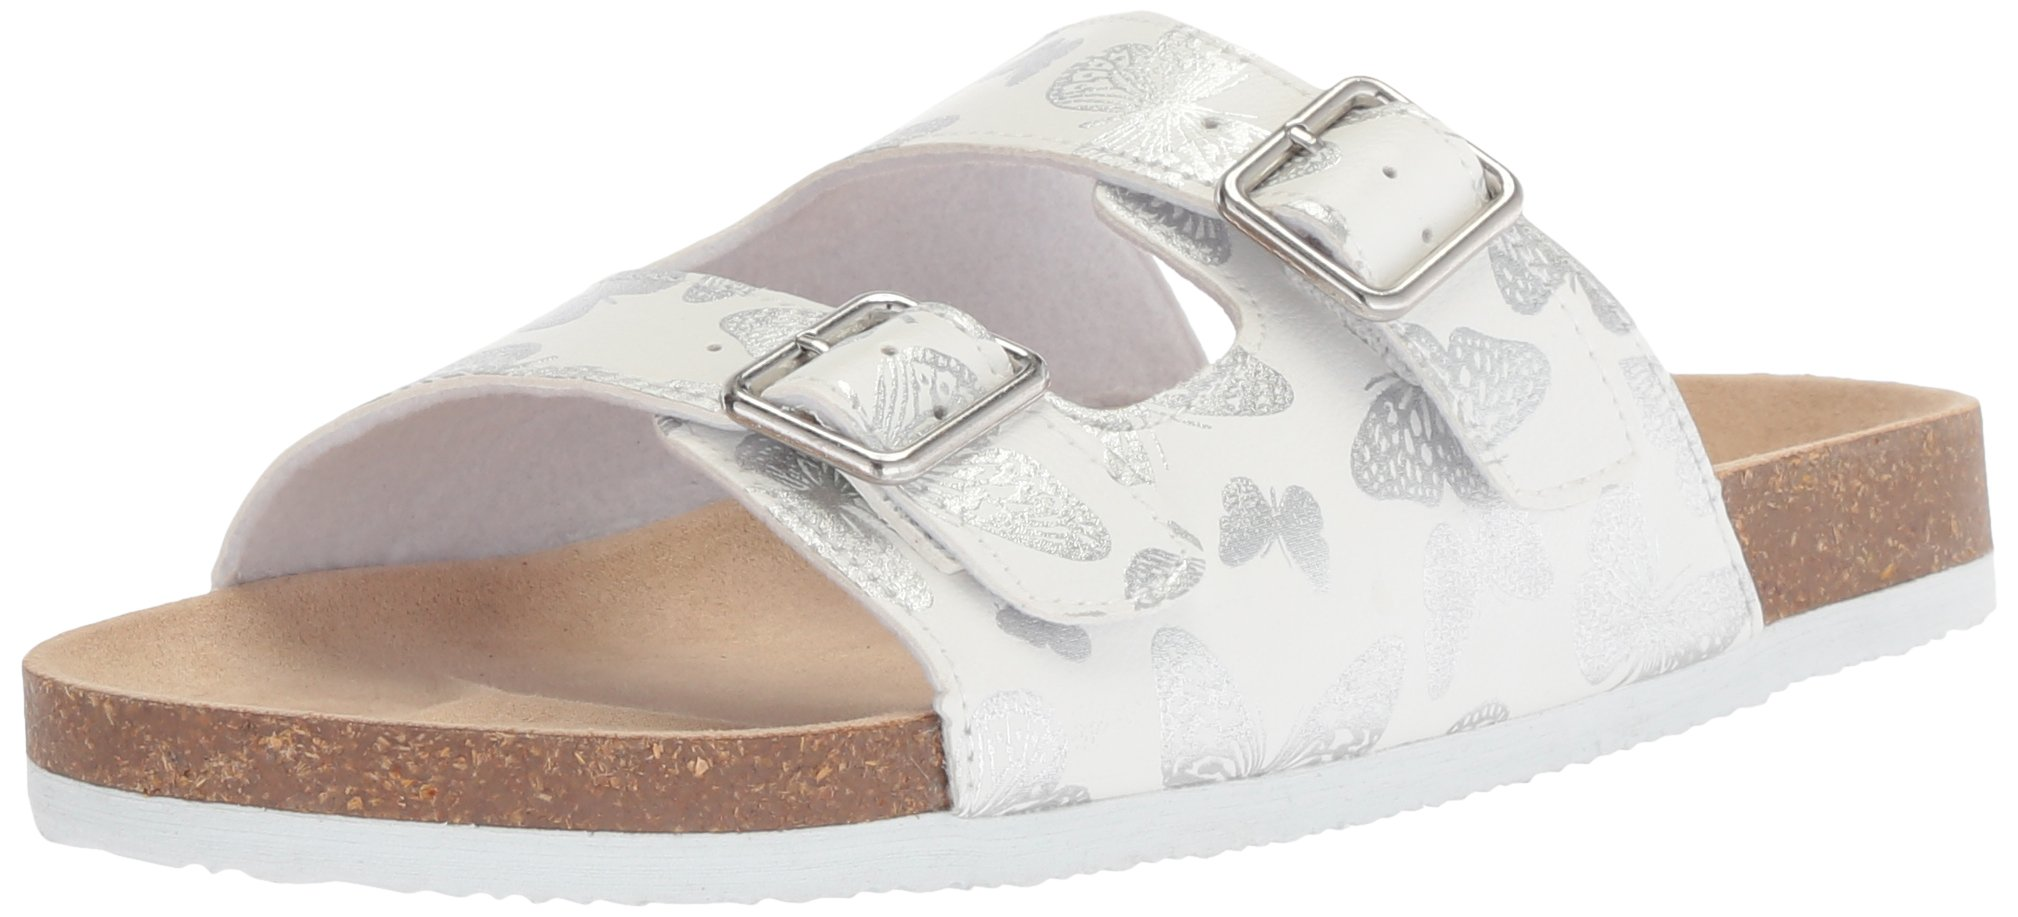 The Children's Place Girls' BG Butterfly LUN Flat Sandal, White, Youth 11 Medium US Big Kid by The Children's Place (Image #1)